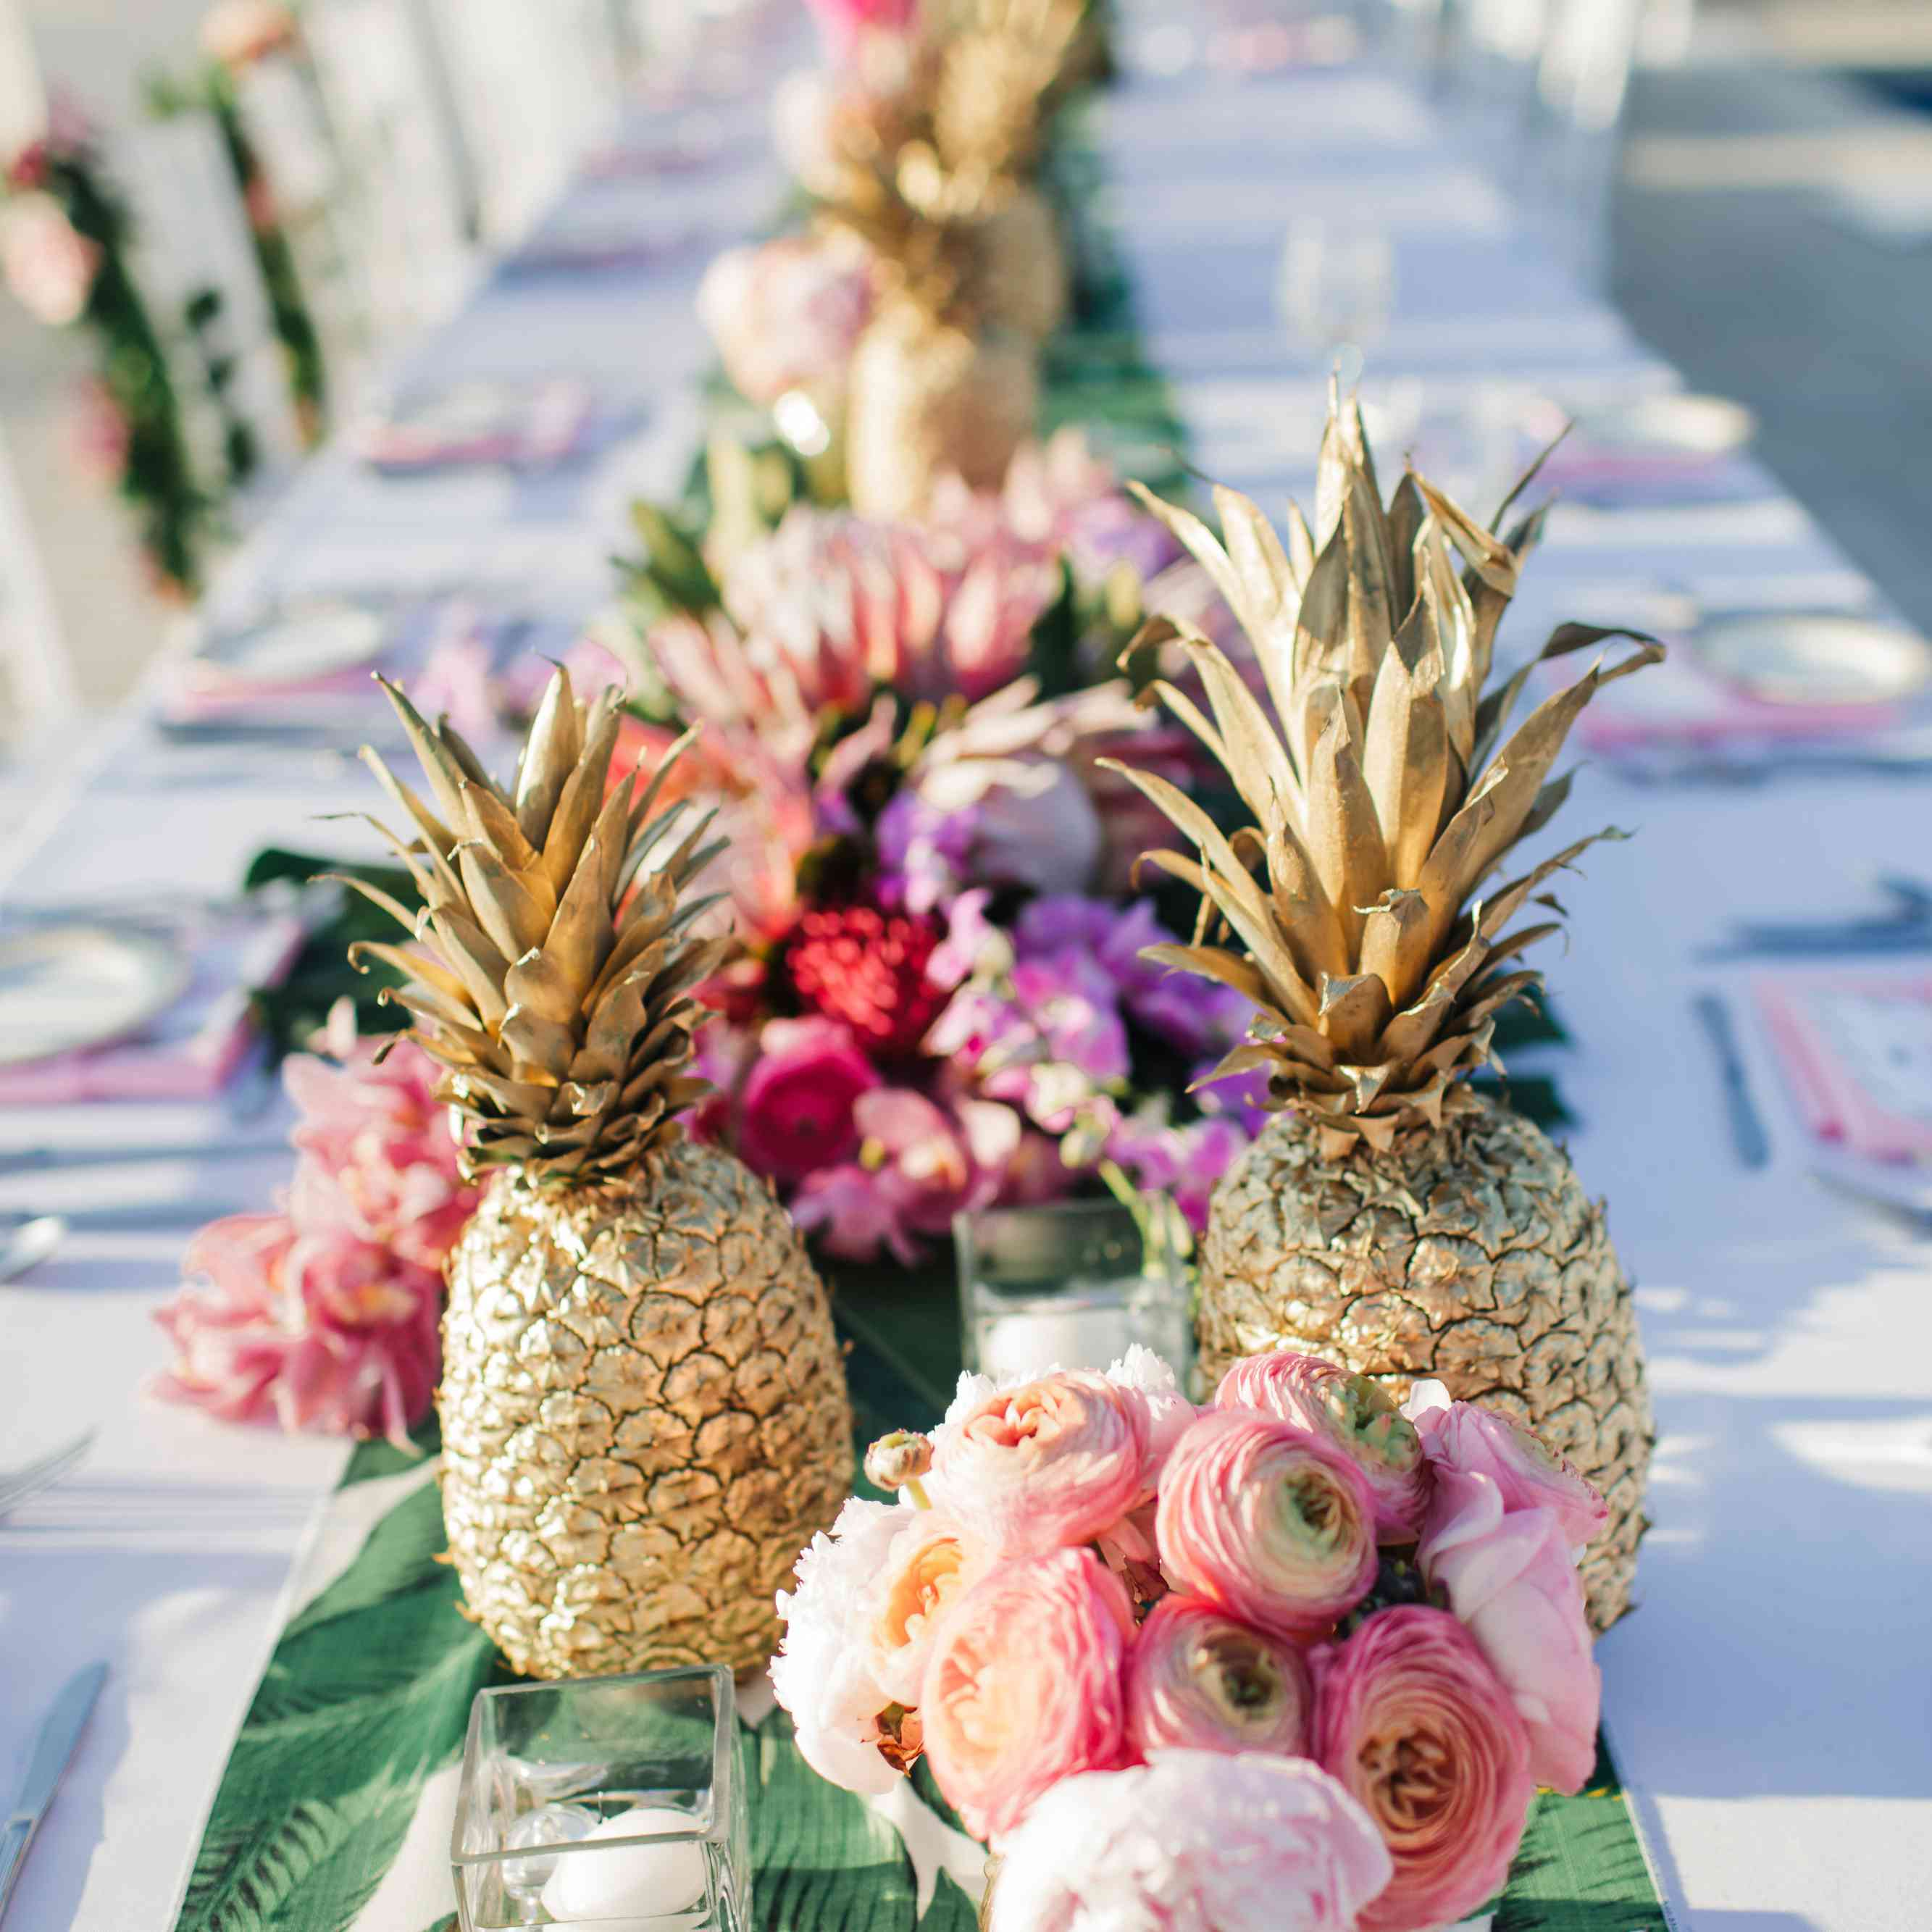 Tablescape with flowers and gold pineapples on palm print runner